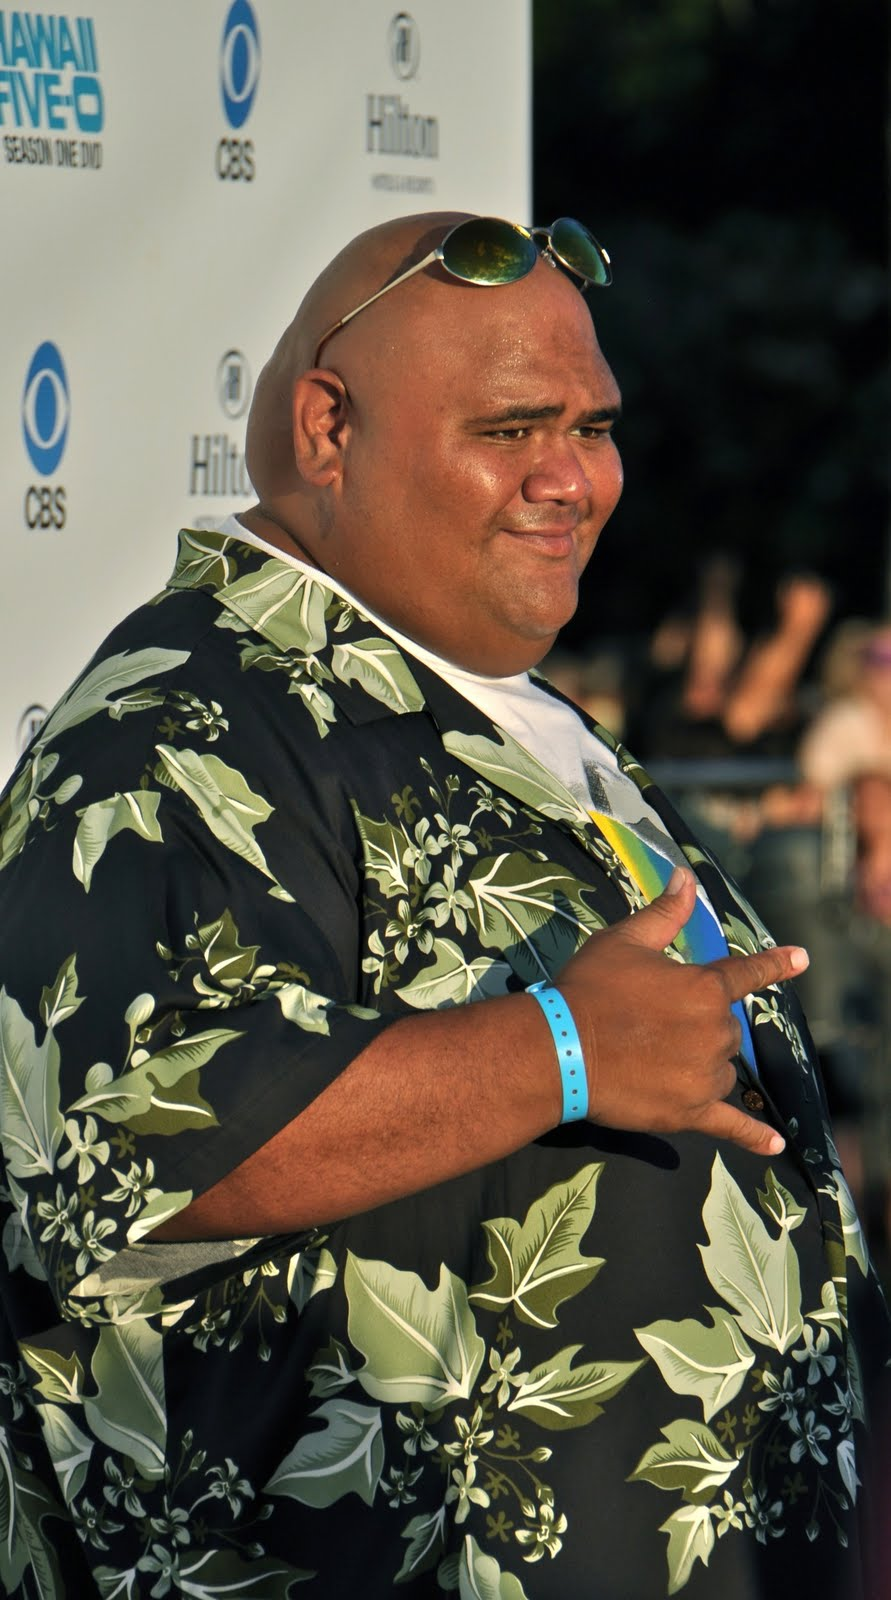 taylor wily hawaii five o